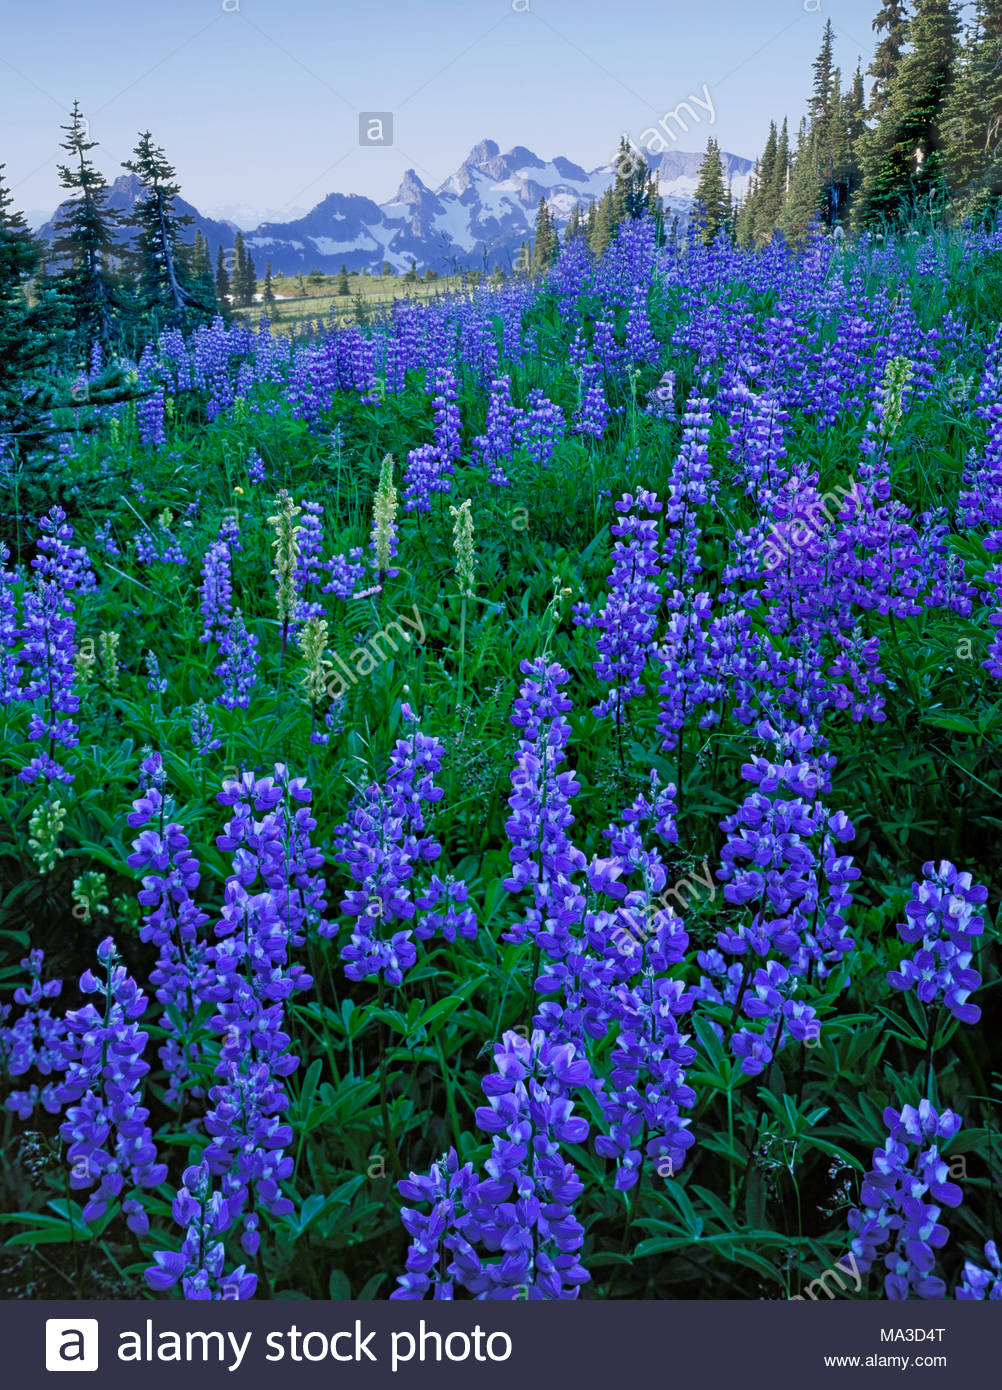 Wildblumen, Mount Rainier National Park, Washington Stockbild